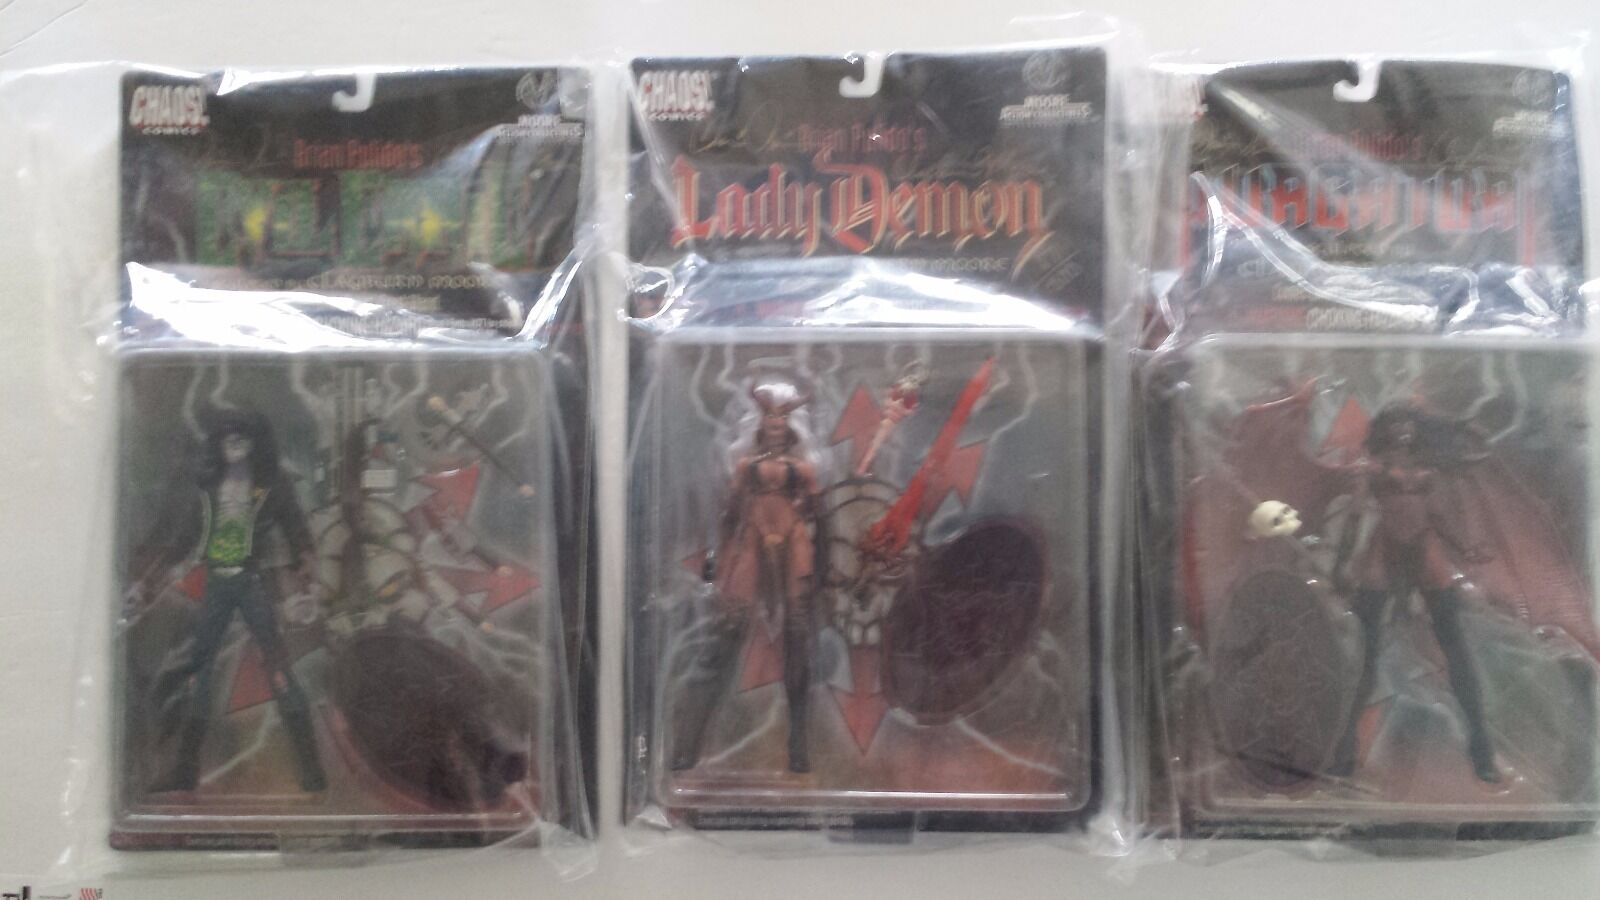 Brian Pulido's 1997 3 Lot Limited 1500 W Autographs sealed Lady Demon NIP.